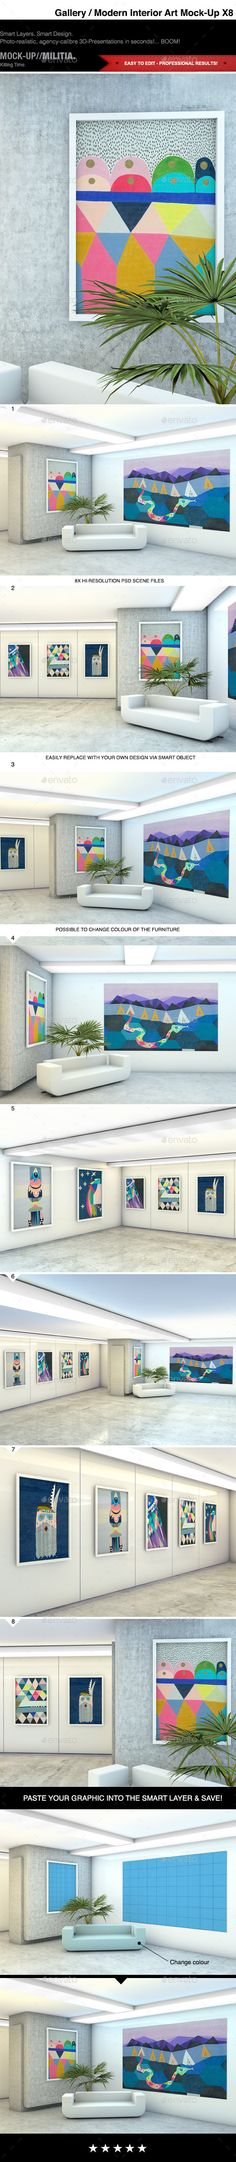 Office | Studio Art Gallery | Photography Mock-Up #officemockup #gallerymockup Download: http://graphicriver.net/item/office-studio-art-gallery-photography-mockup/10507471?ref=ksioks